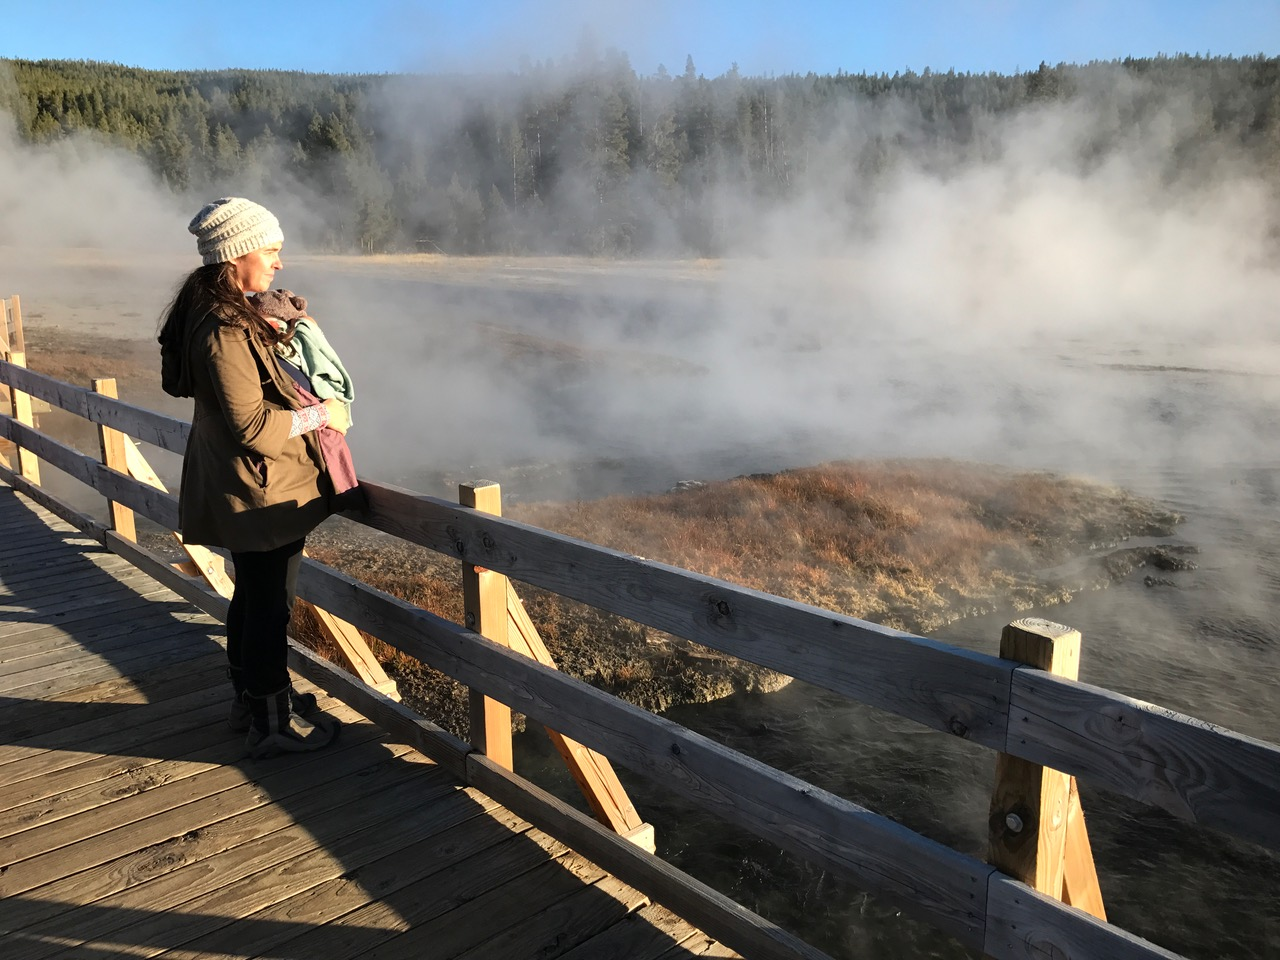 Admiring the steam at the Hot Lake area of the park